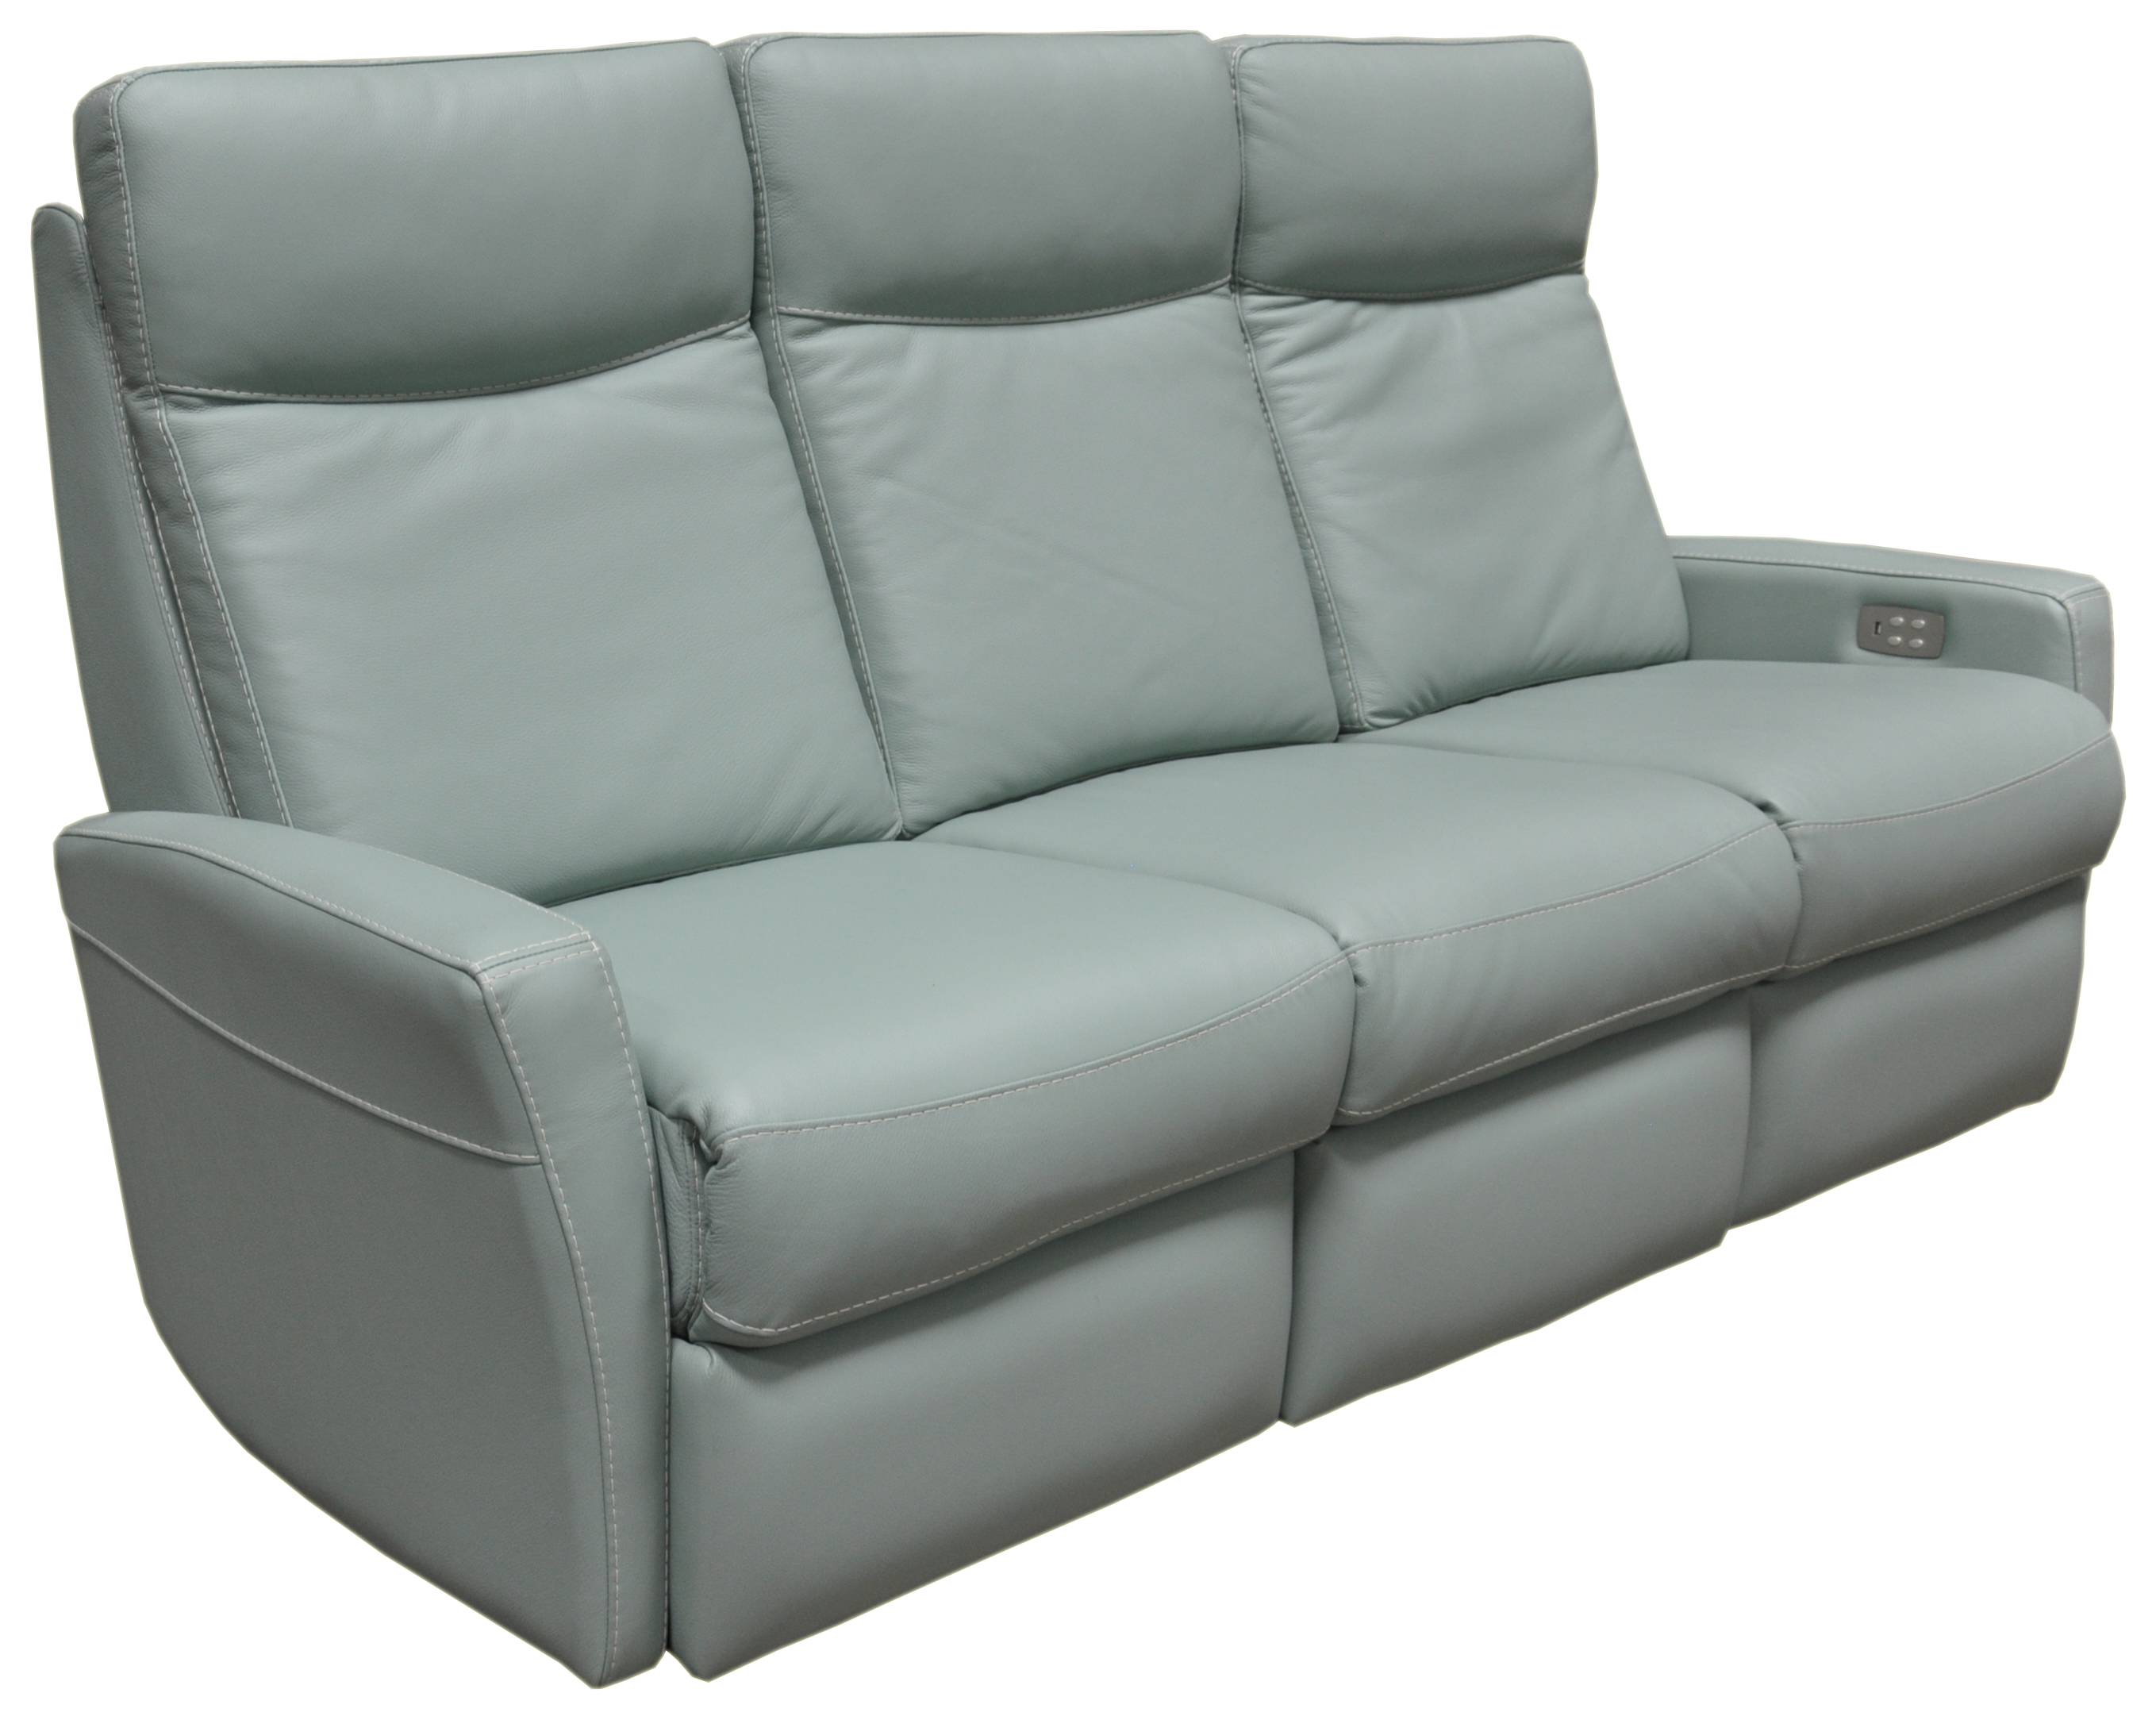 Lazio Reclining Sofa, Omnia Leather